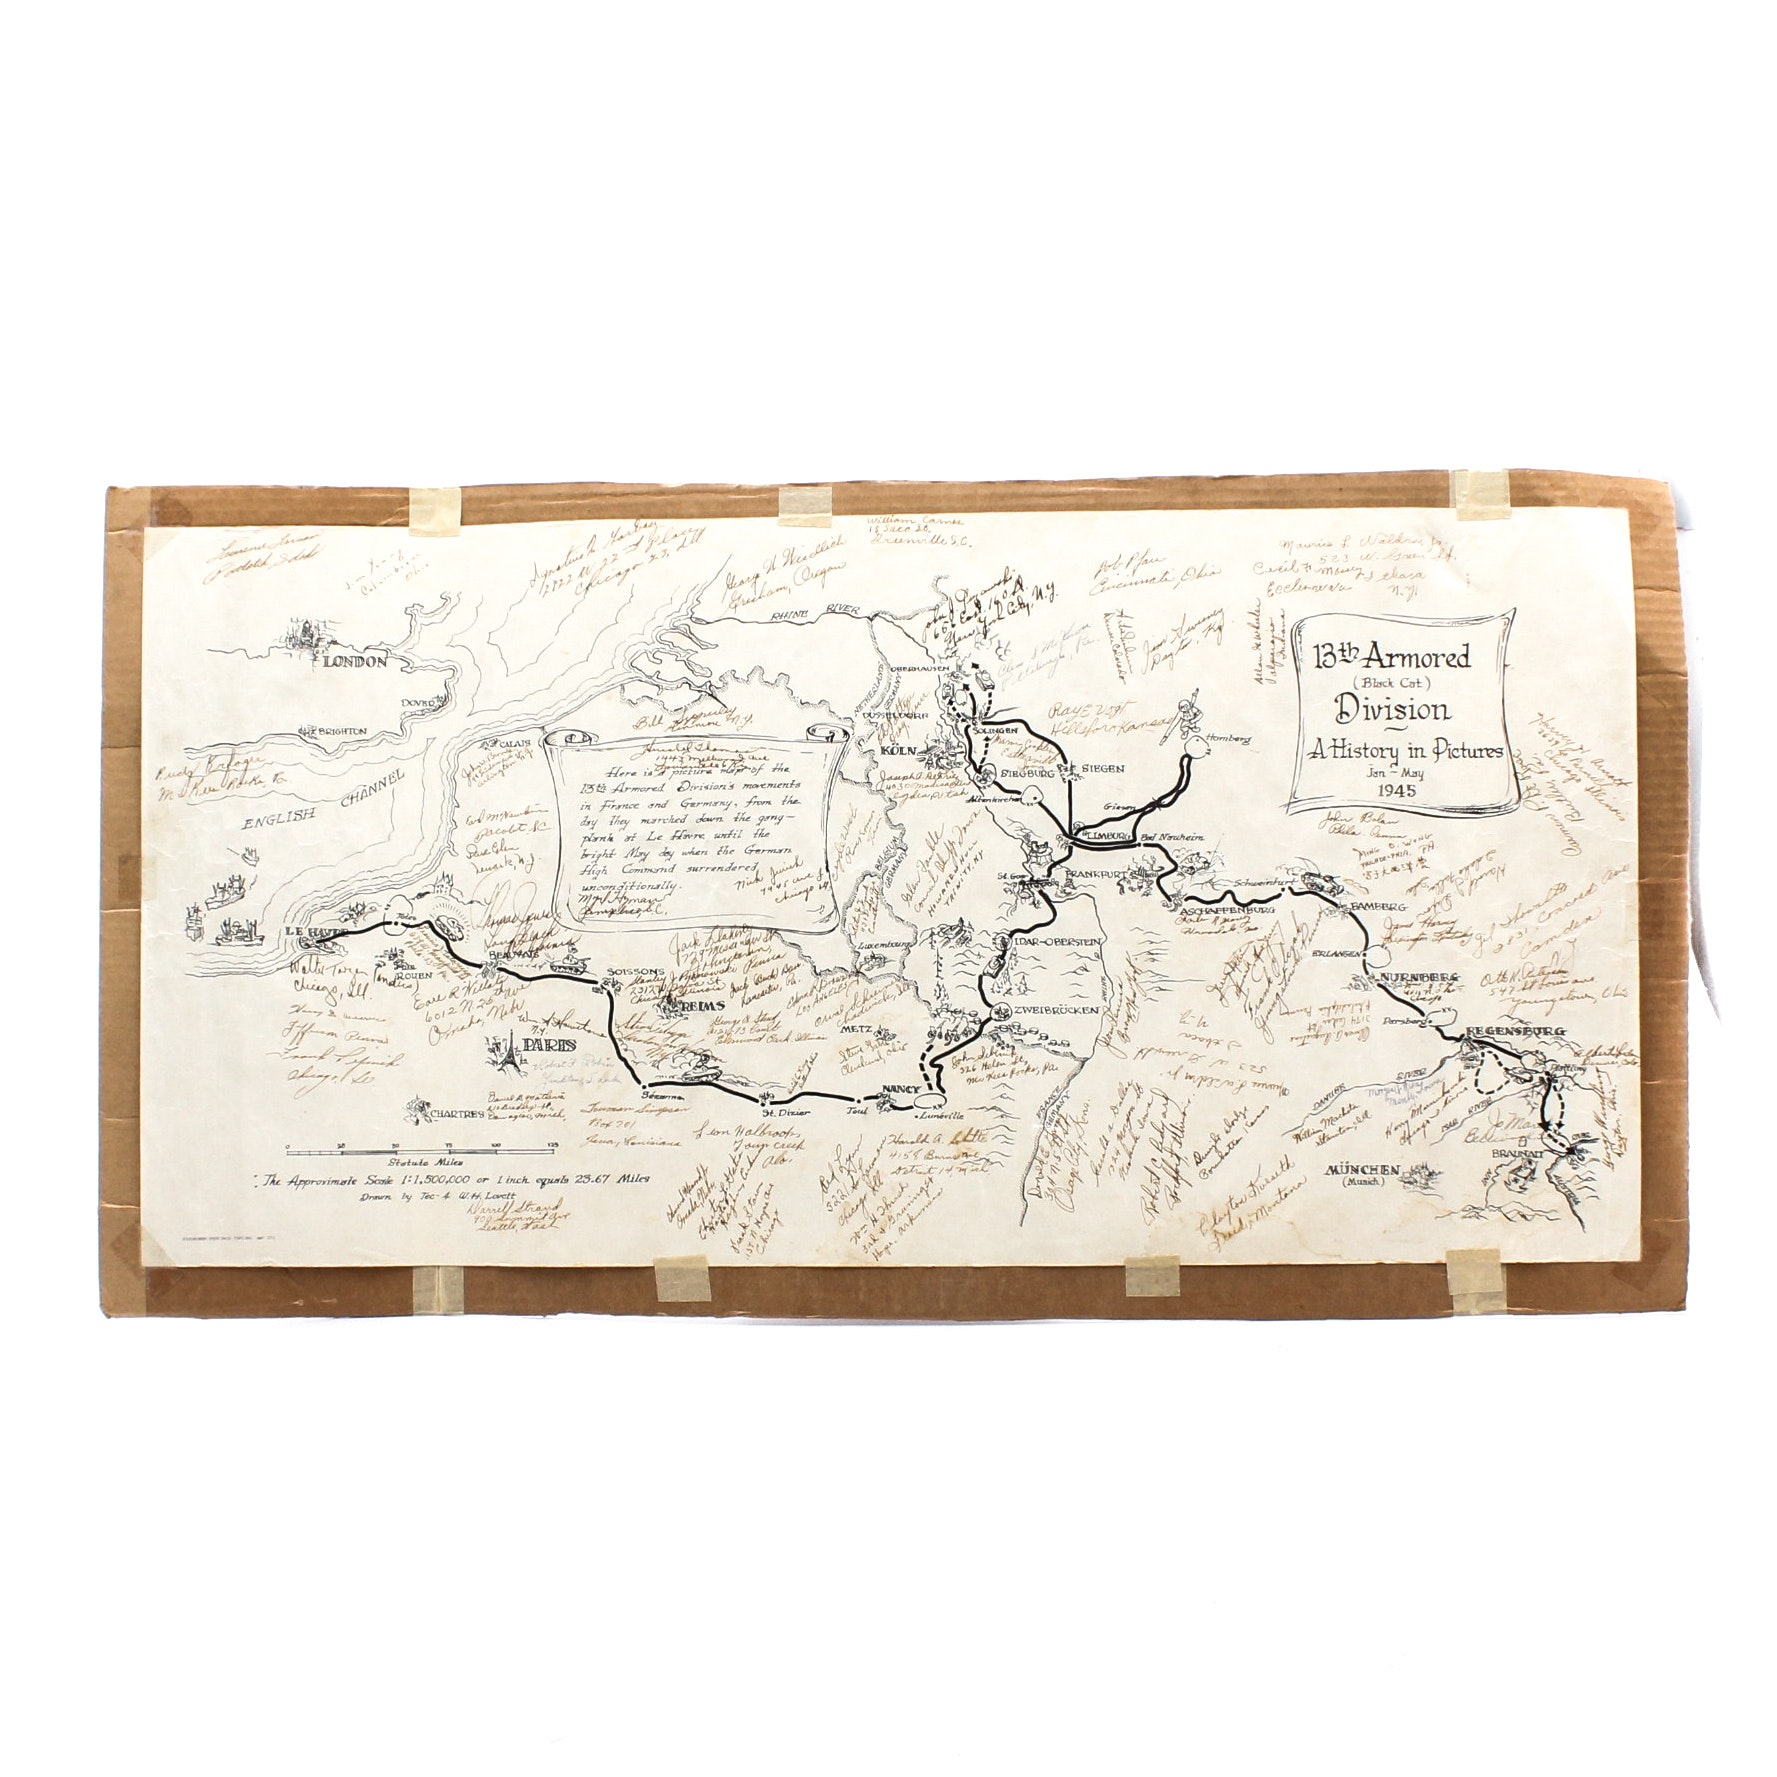 Map of 13th Armored Division Movements with Soldier Autographs